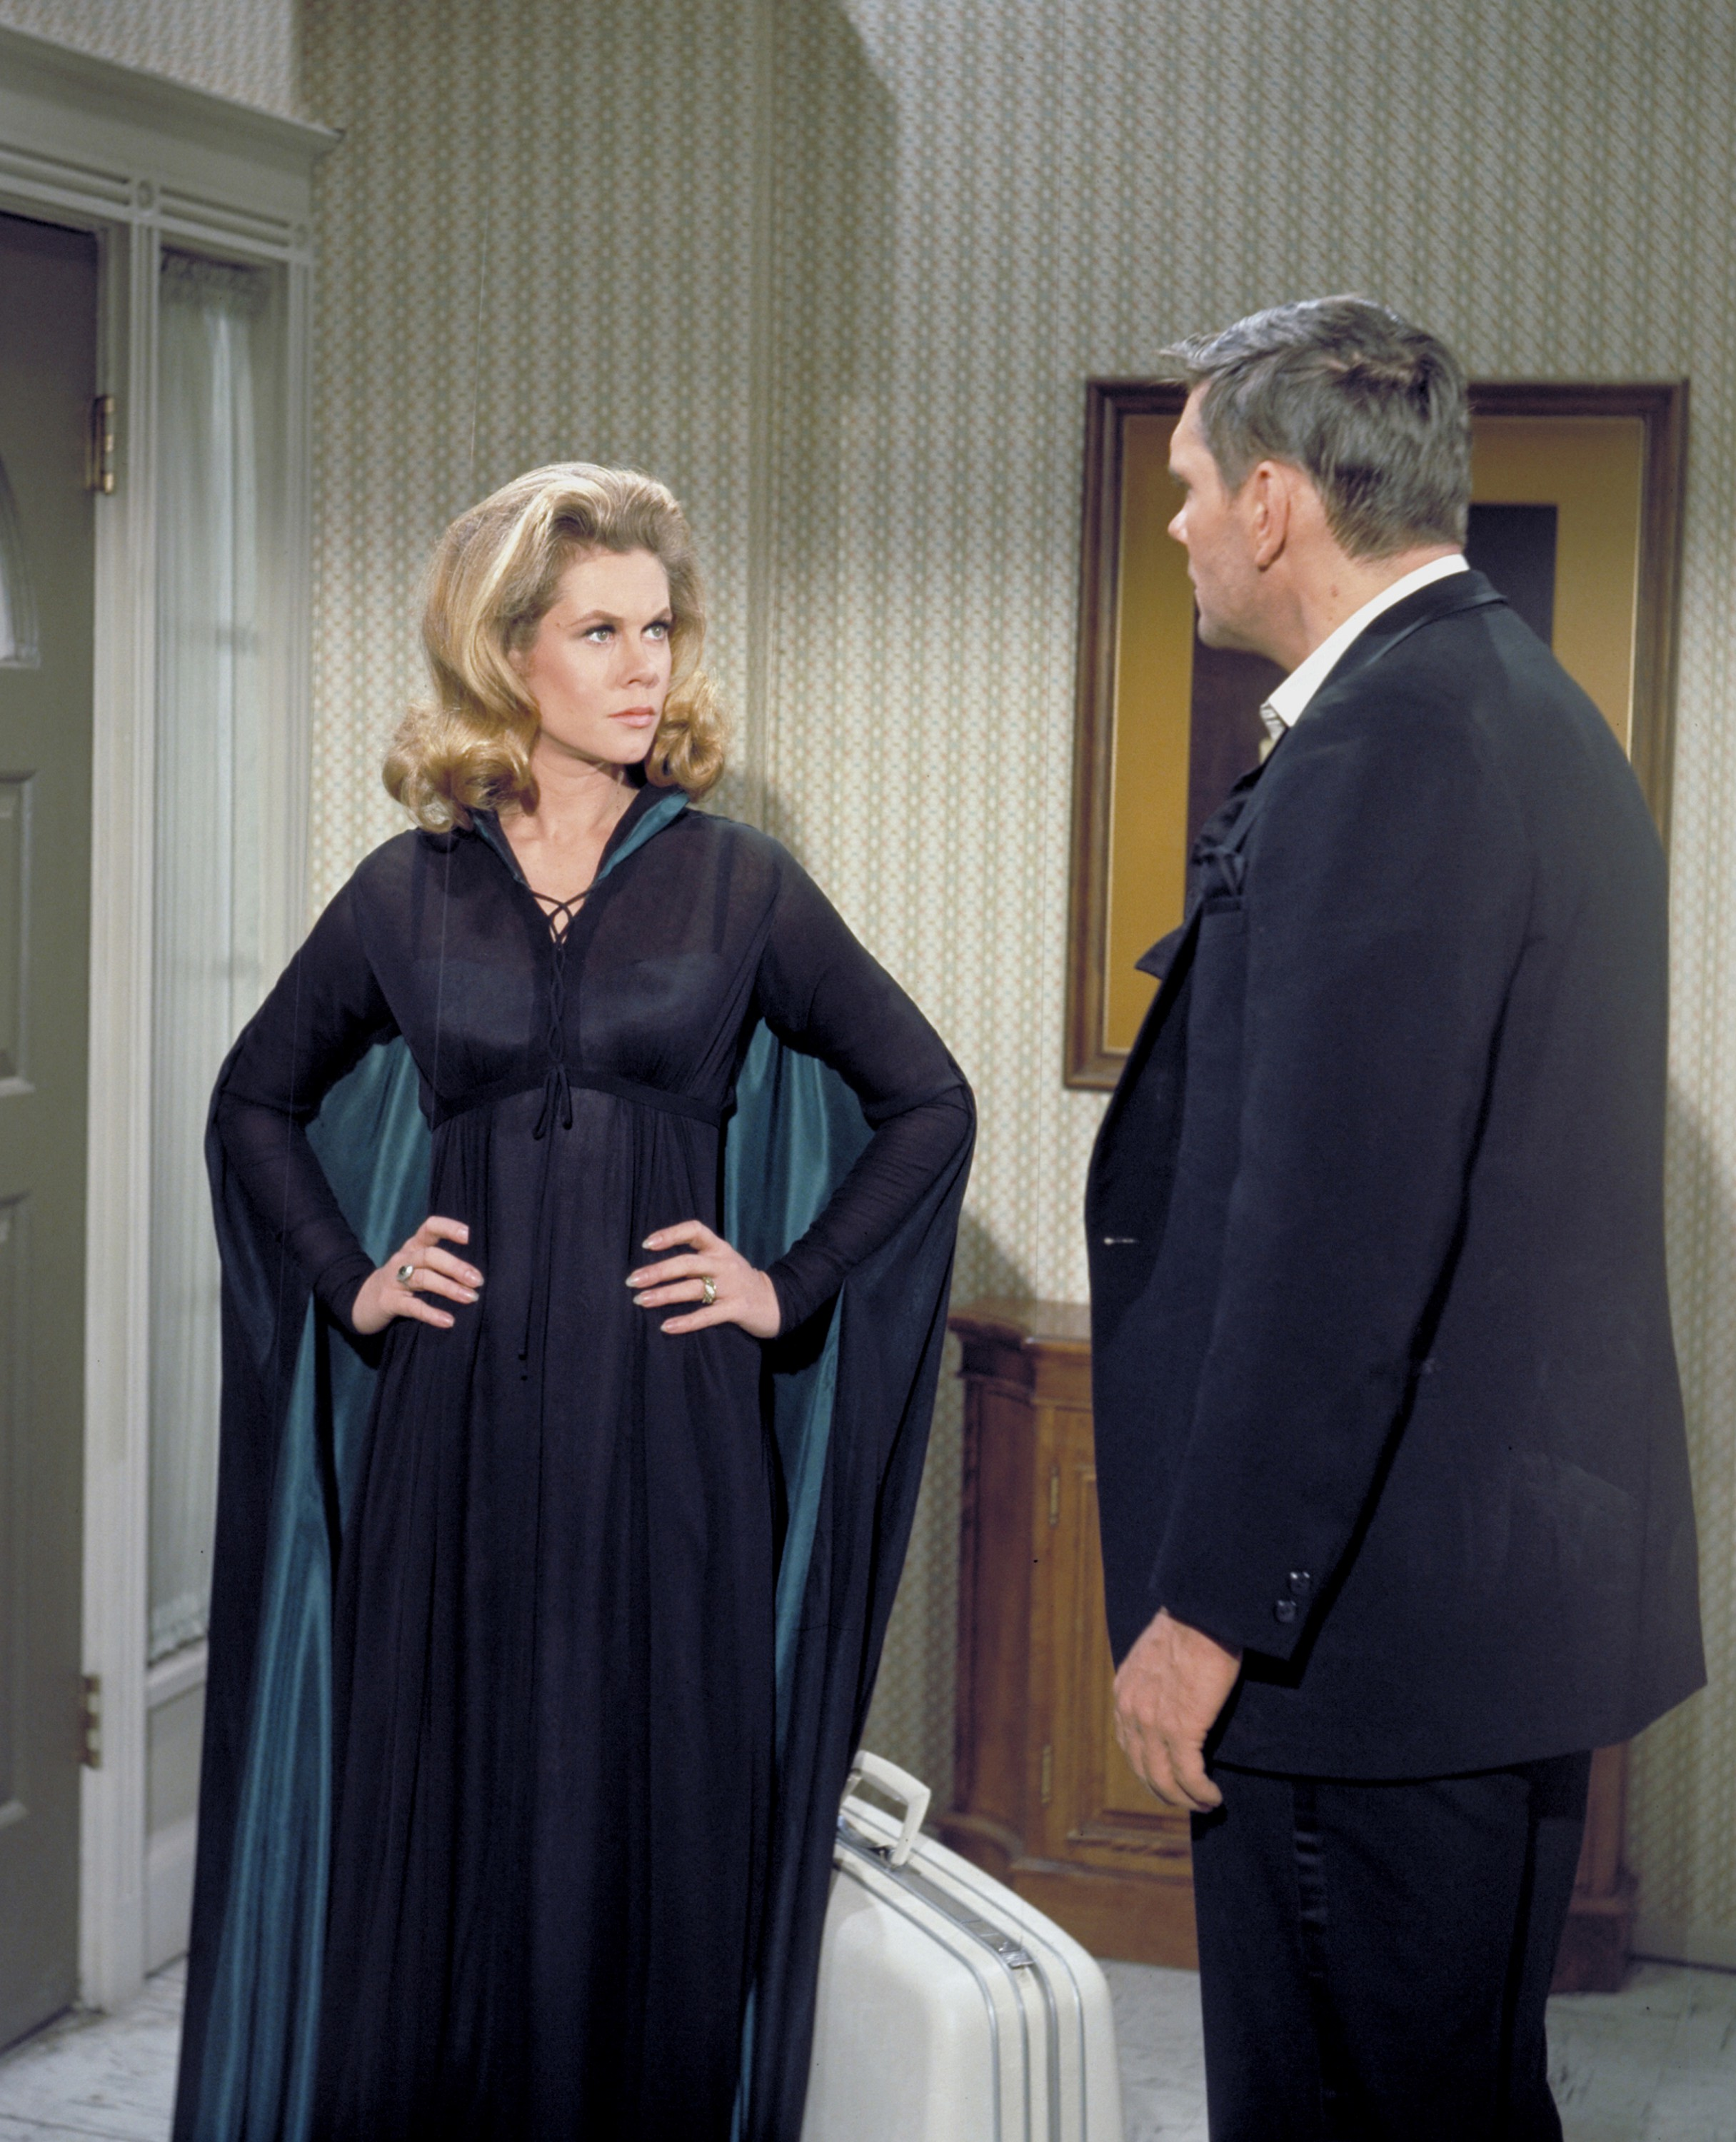 Samantha (Elizabeth Montgomery) and Endora returned to the 14th century to remove a curse placed on Darrin's (Dick York) ancestors.